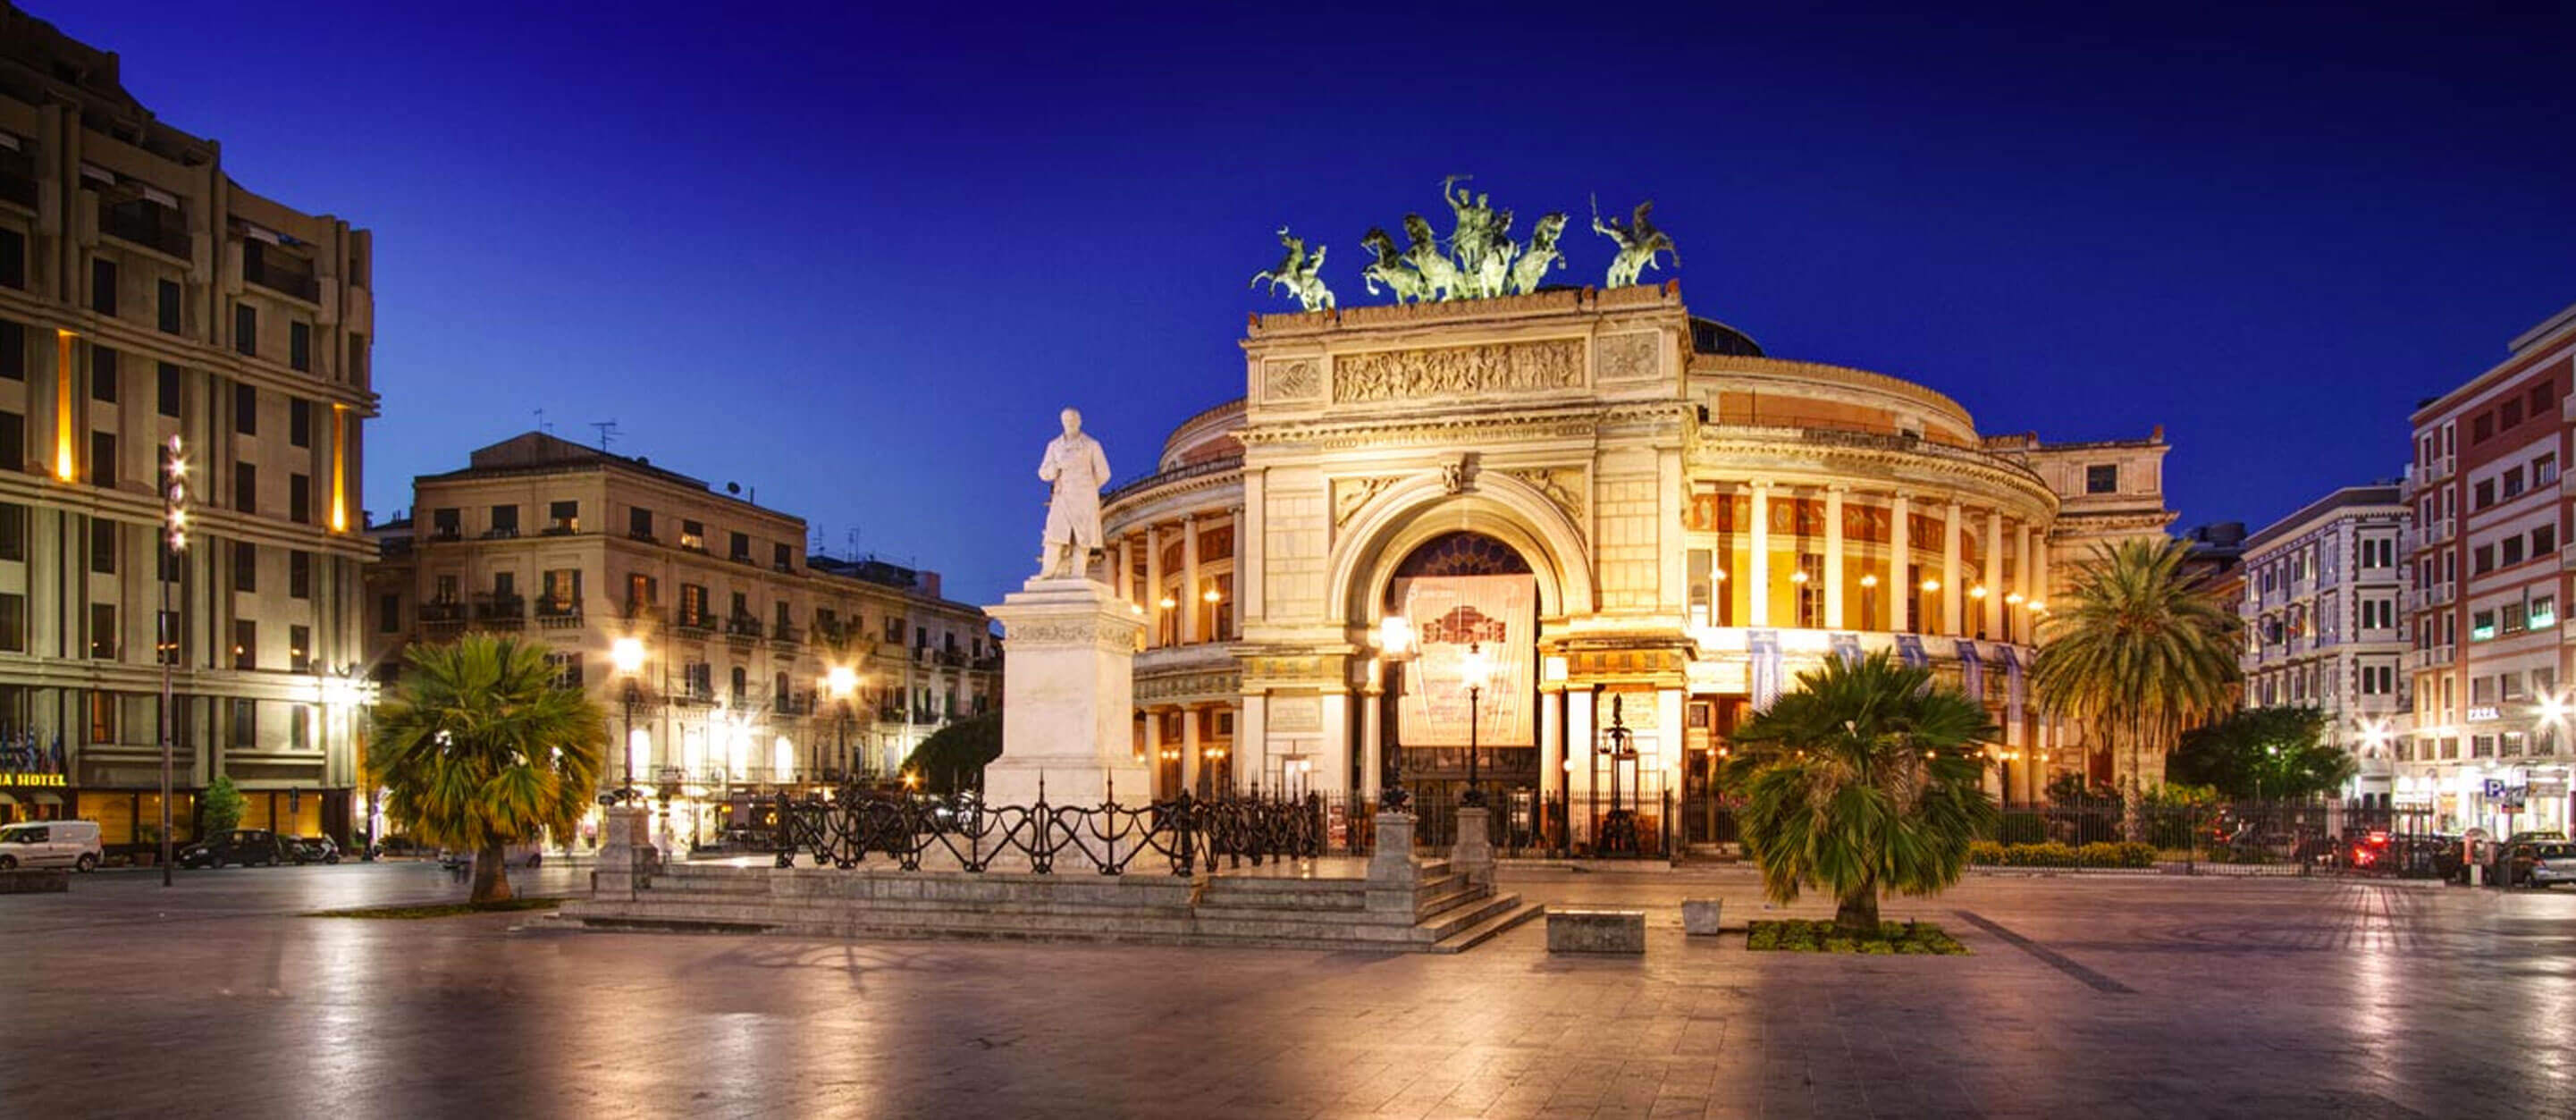 10 things to see in palermo